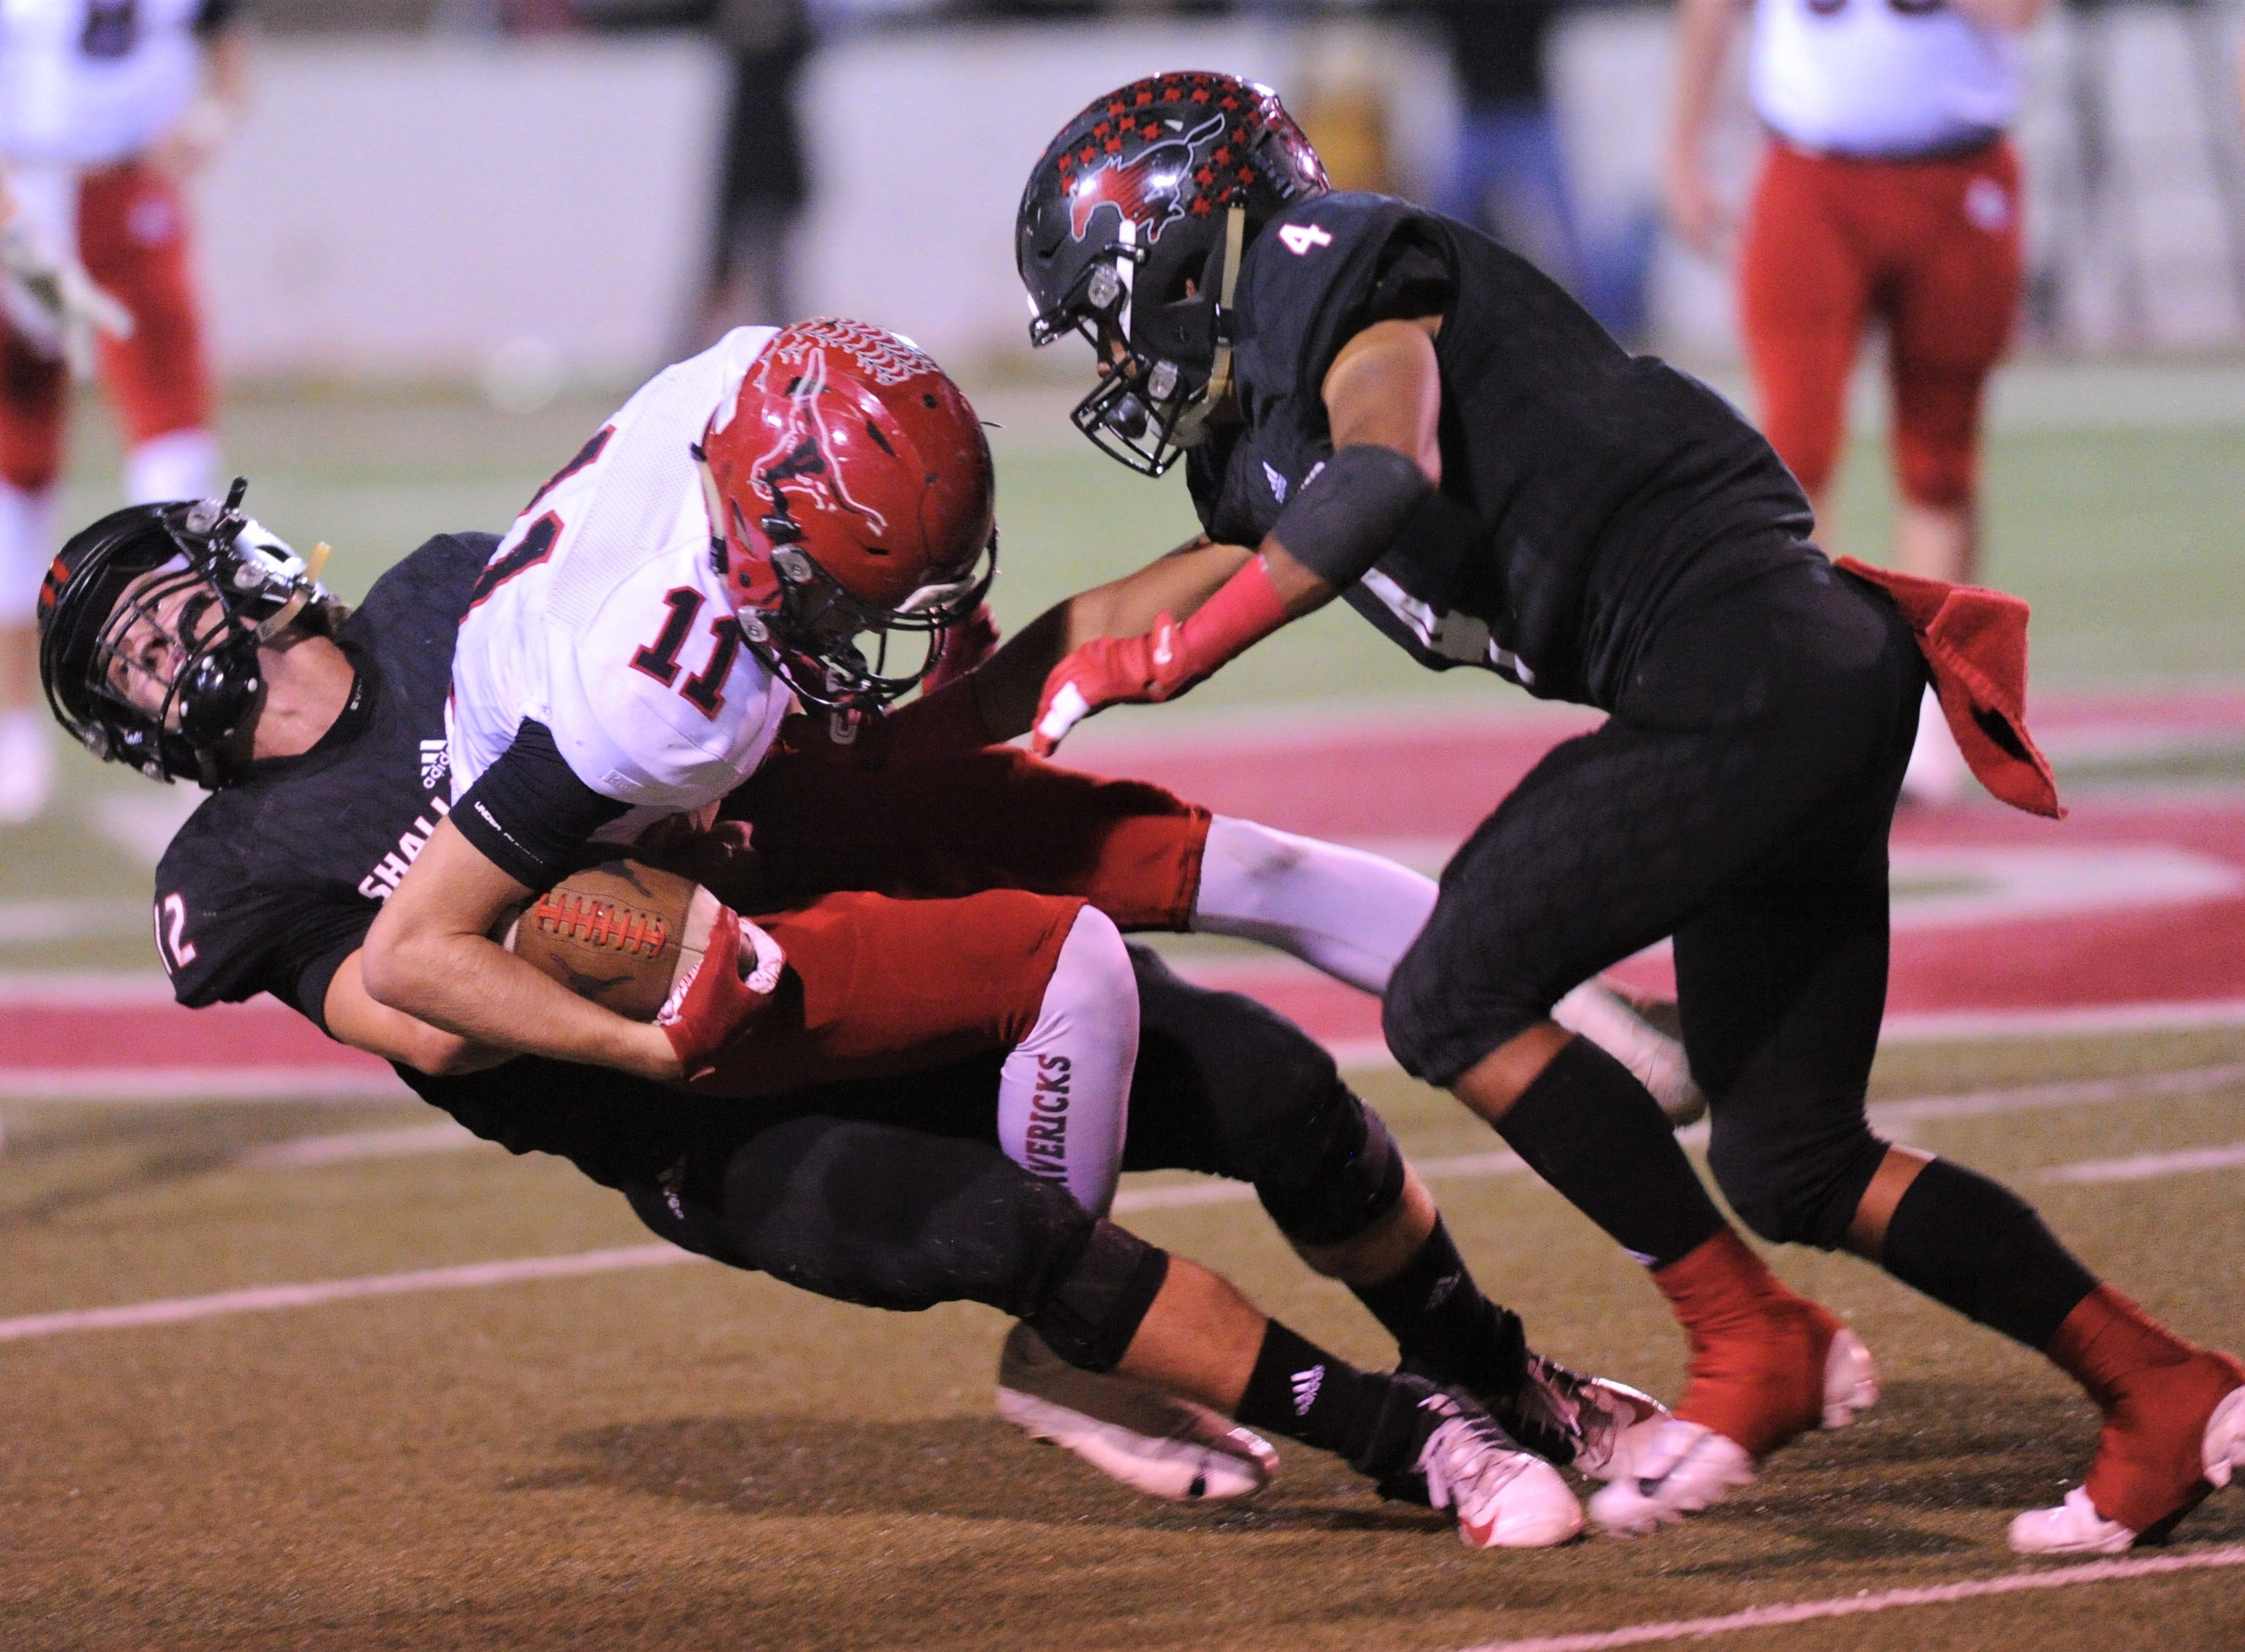 Eastland's Tyler Lucky (11) tackled by a pair of Shallowater players after making a catch. Shallowater beat the Mavericks 56-21 in the Region I-3A Division I semifinal playoff game Thursday, Nov. 29, 2018, at the Mustang Bowl in Sweetwater.